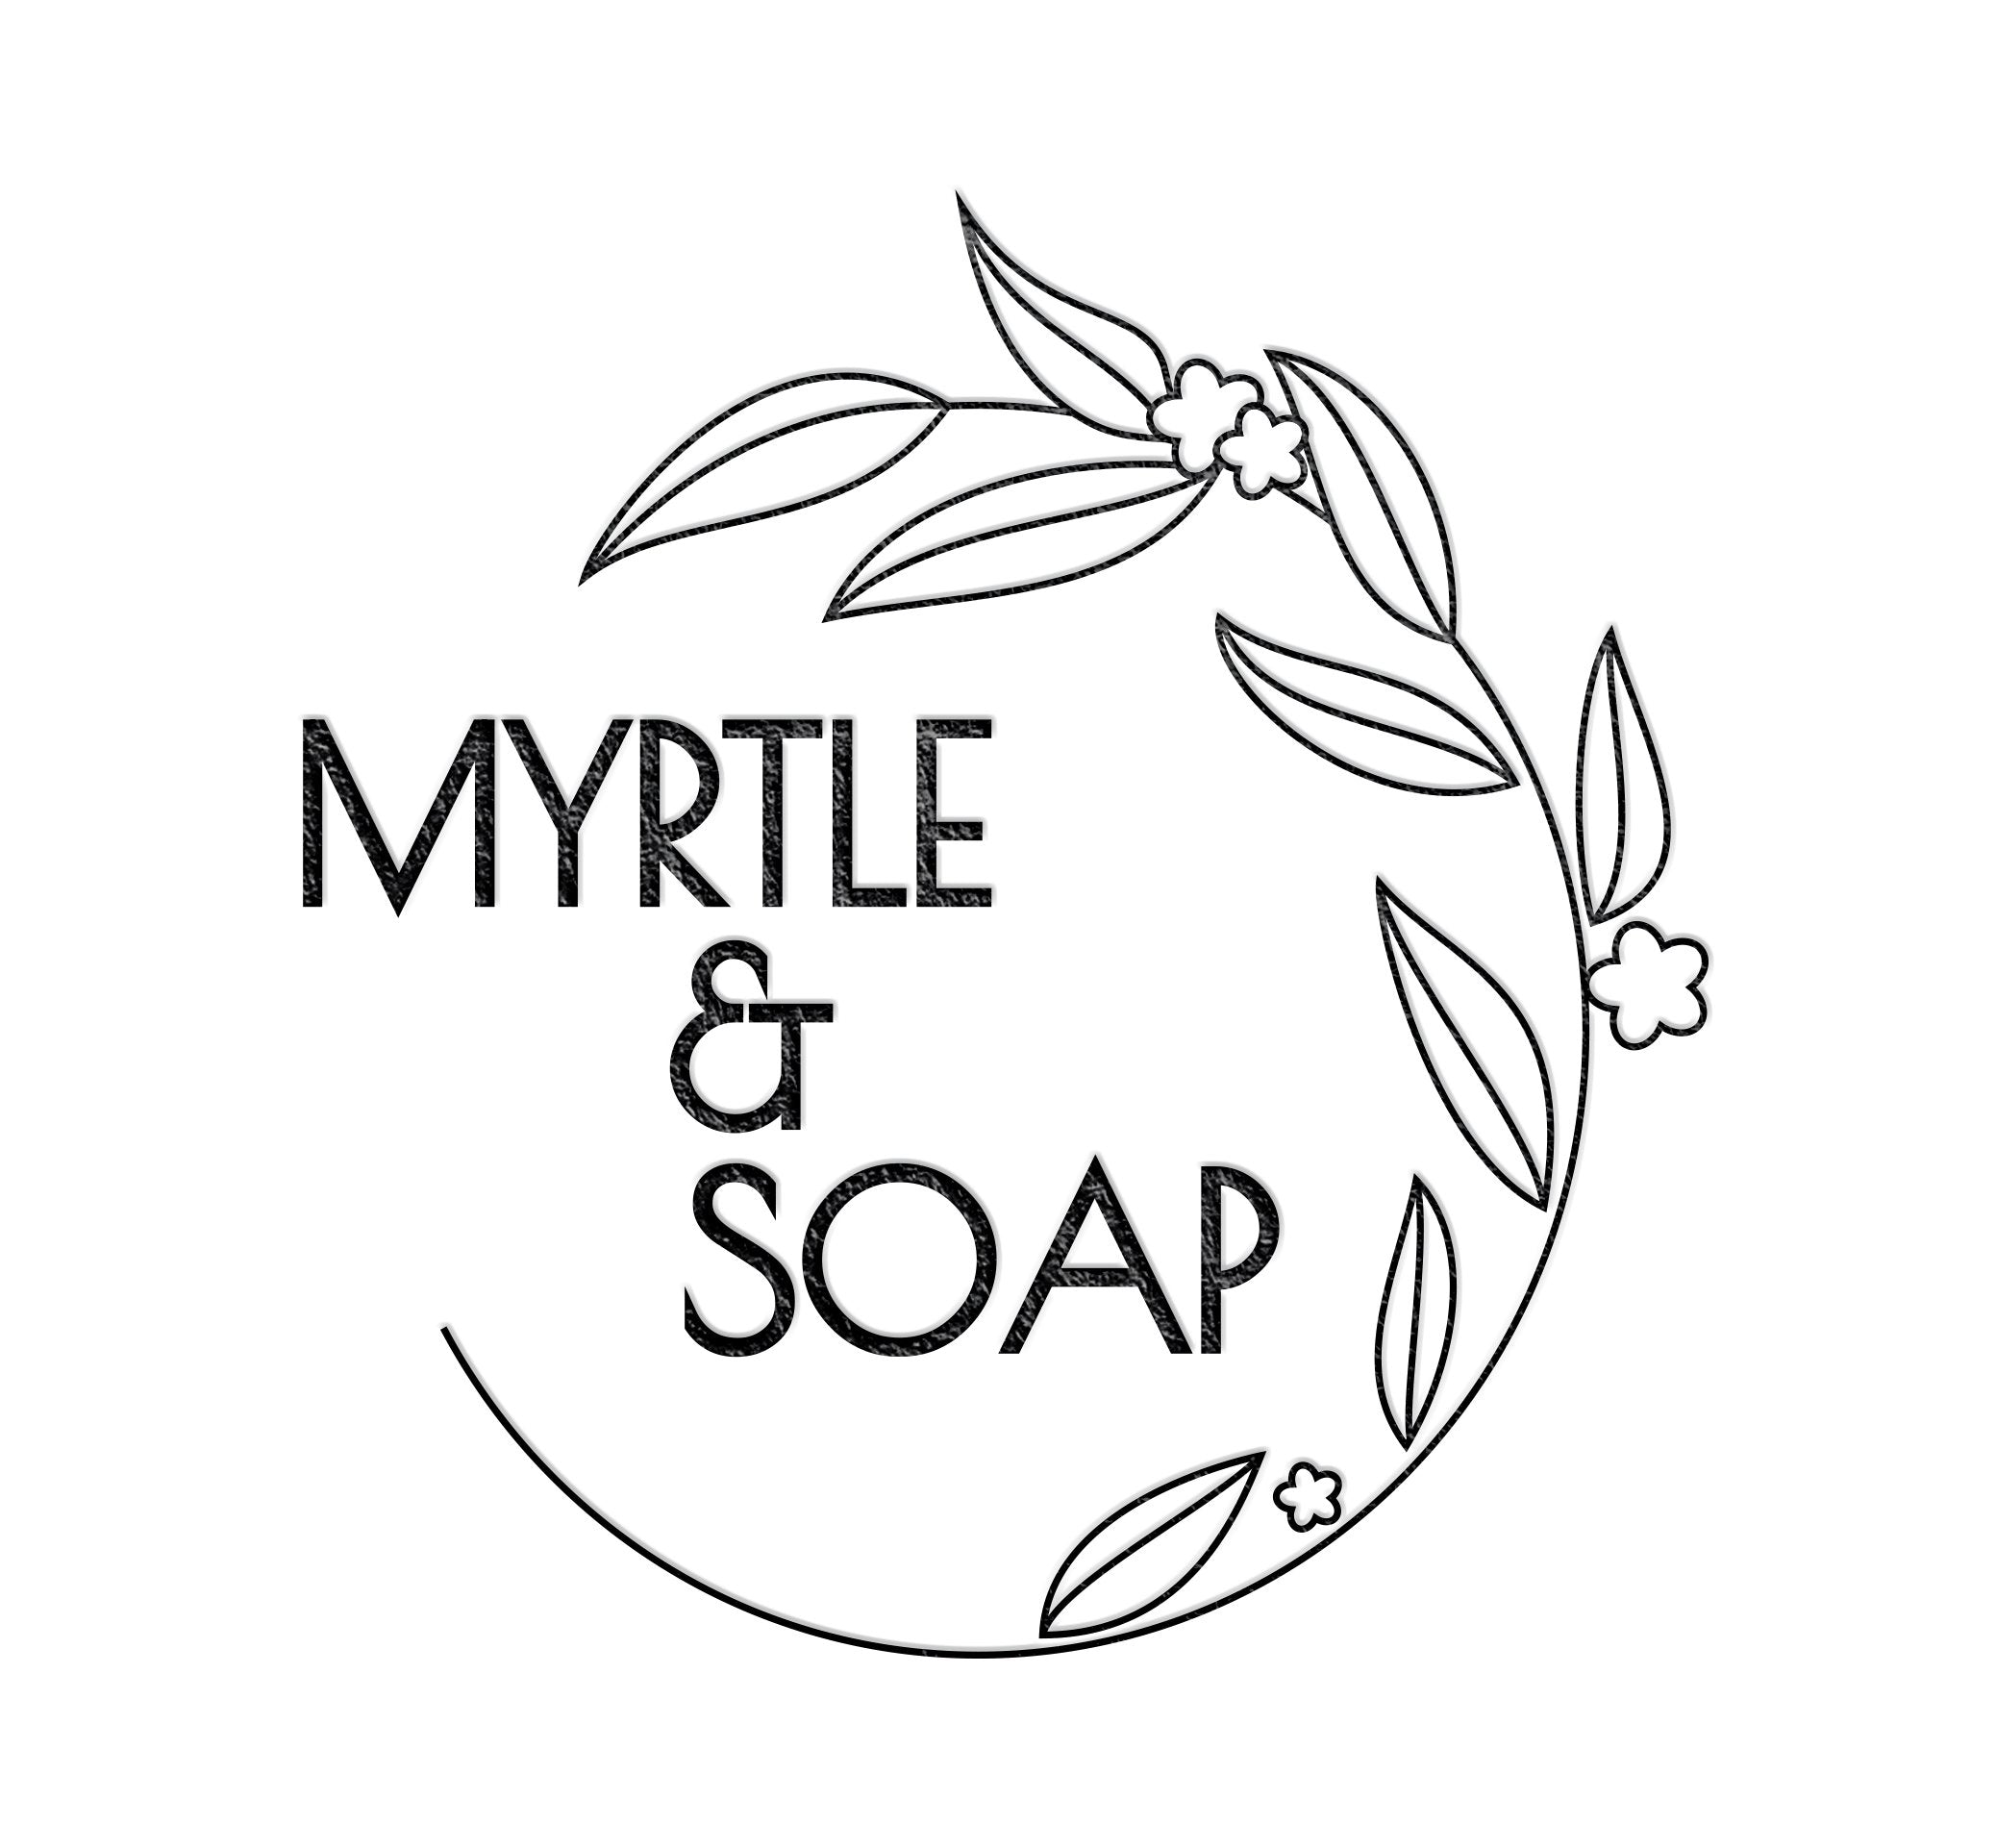 ecocobox brands - Myrtle and Soap